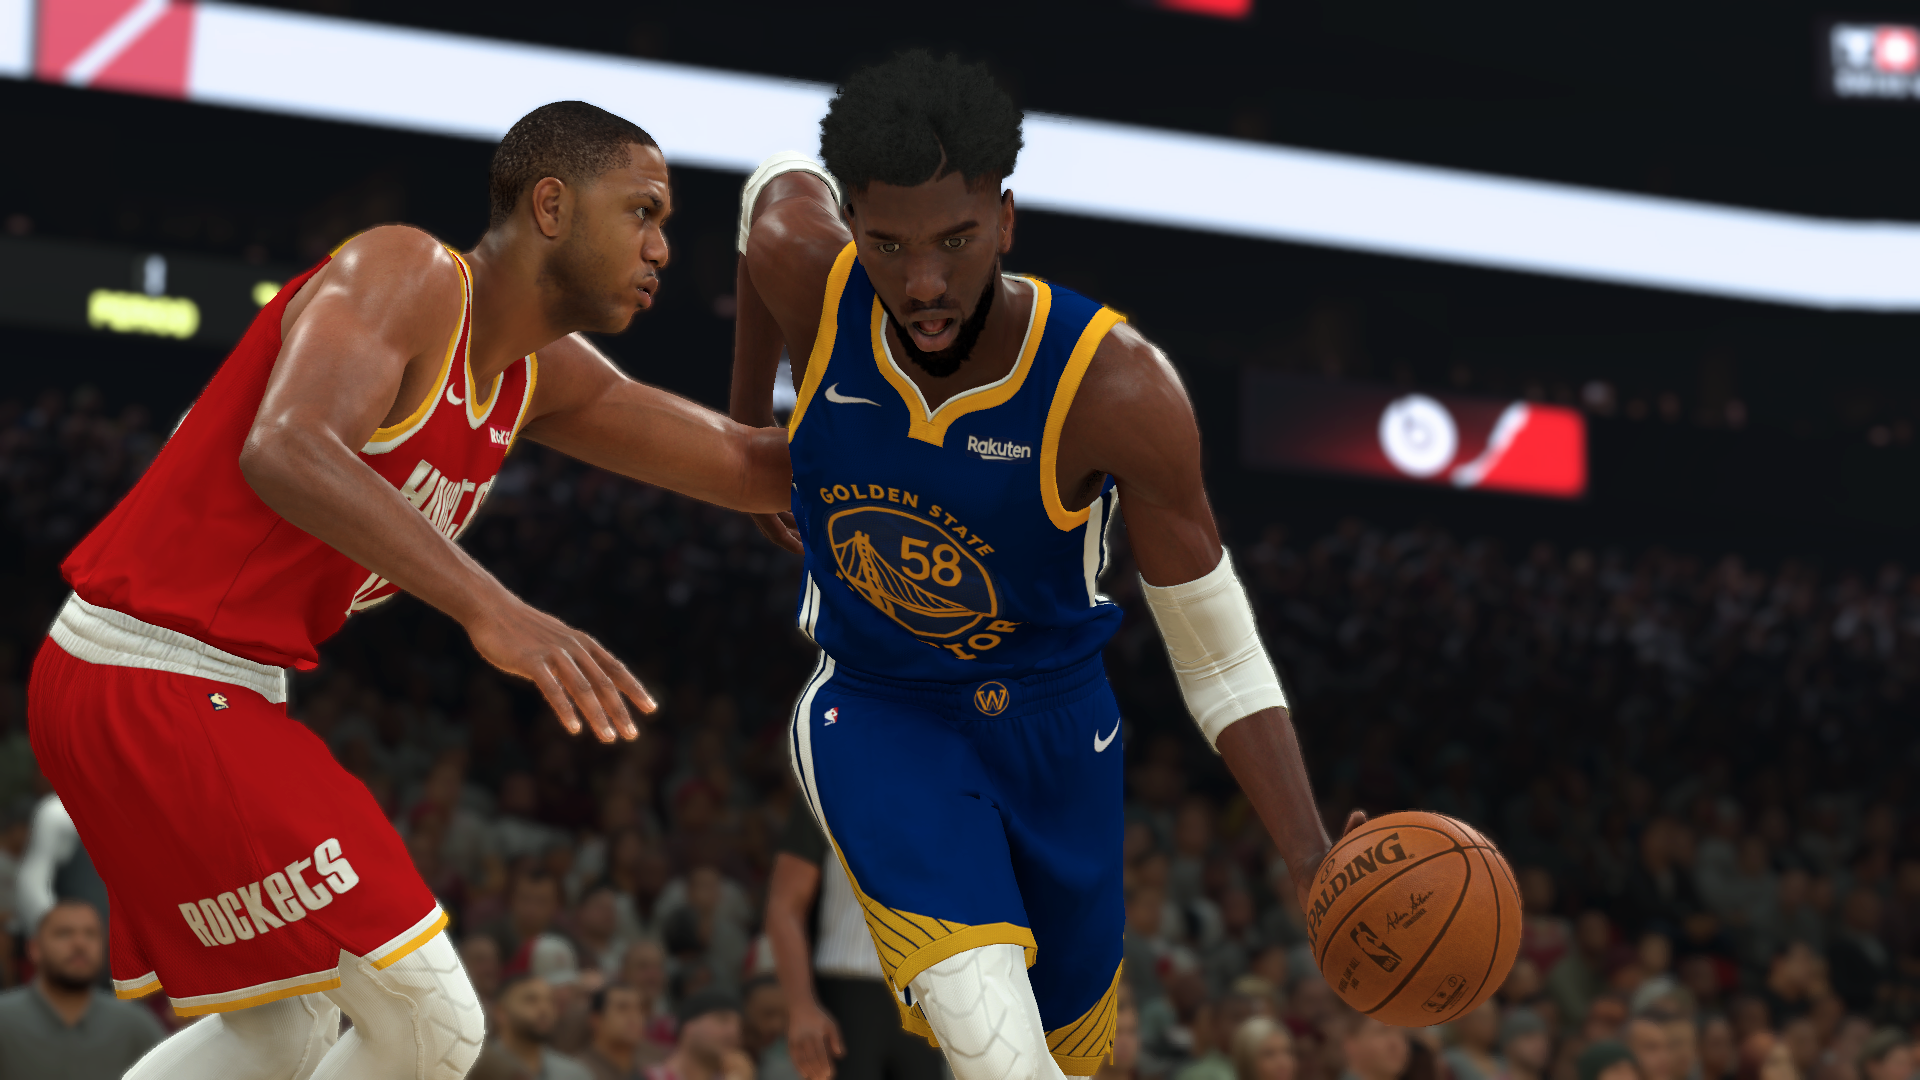 Why do I keep restarting my sports career modes?